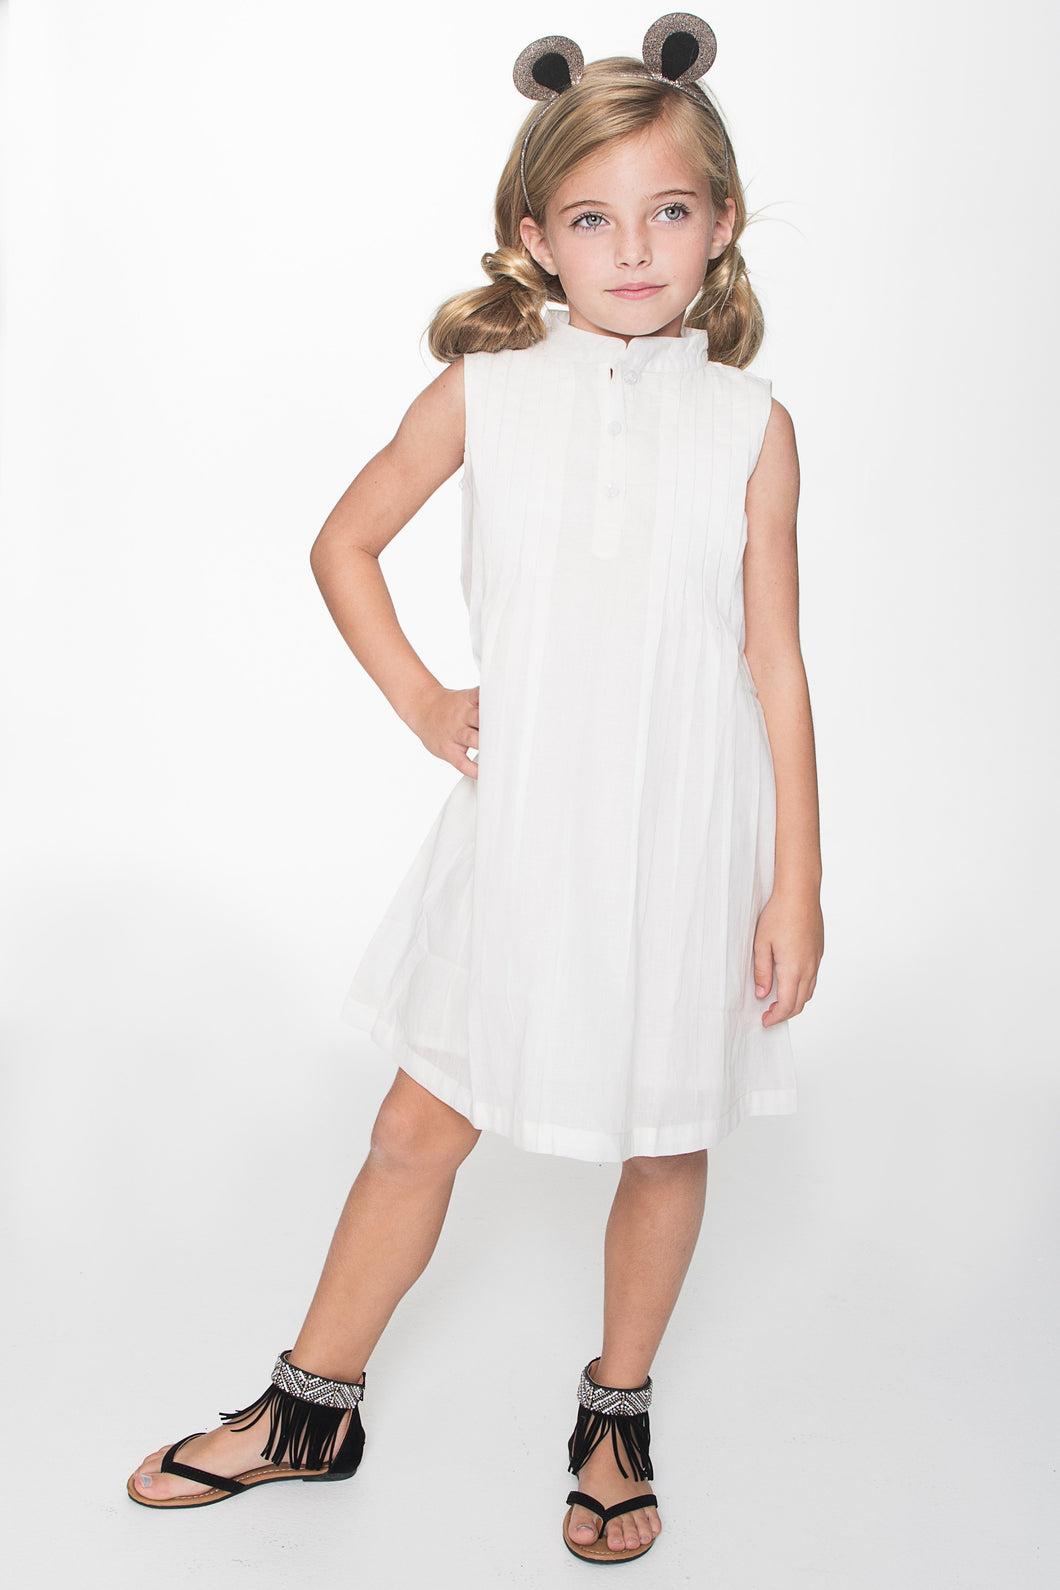 Off-White Pin-tuck Detail Dress - Kids Clothing, Dress - Girls Dress, Yo Baby Online - Yo Baby